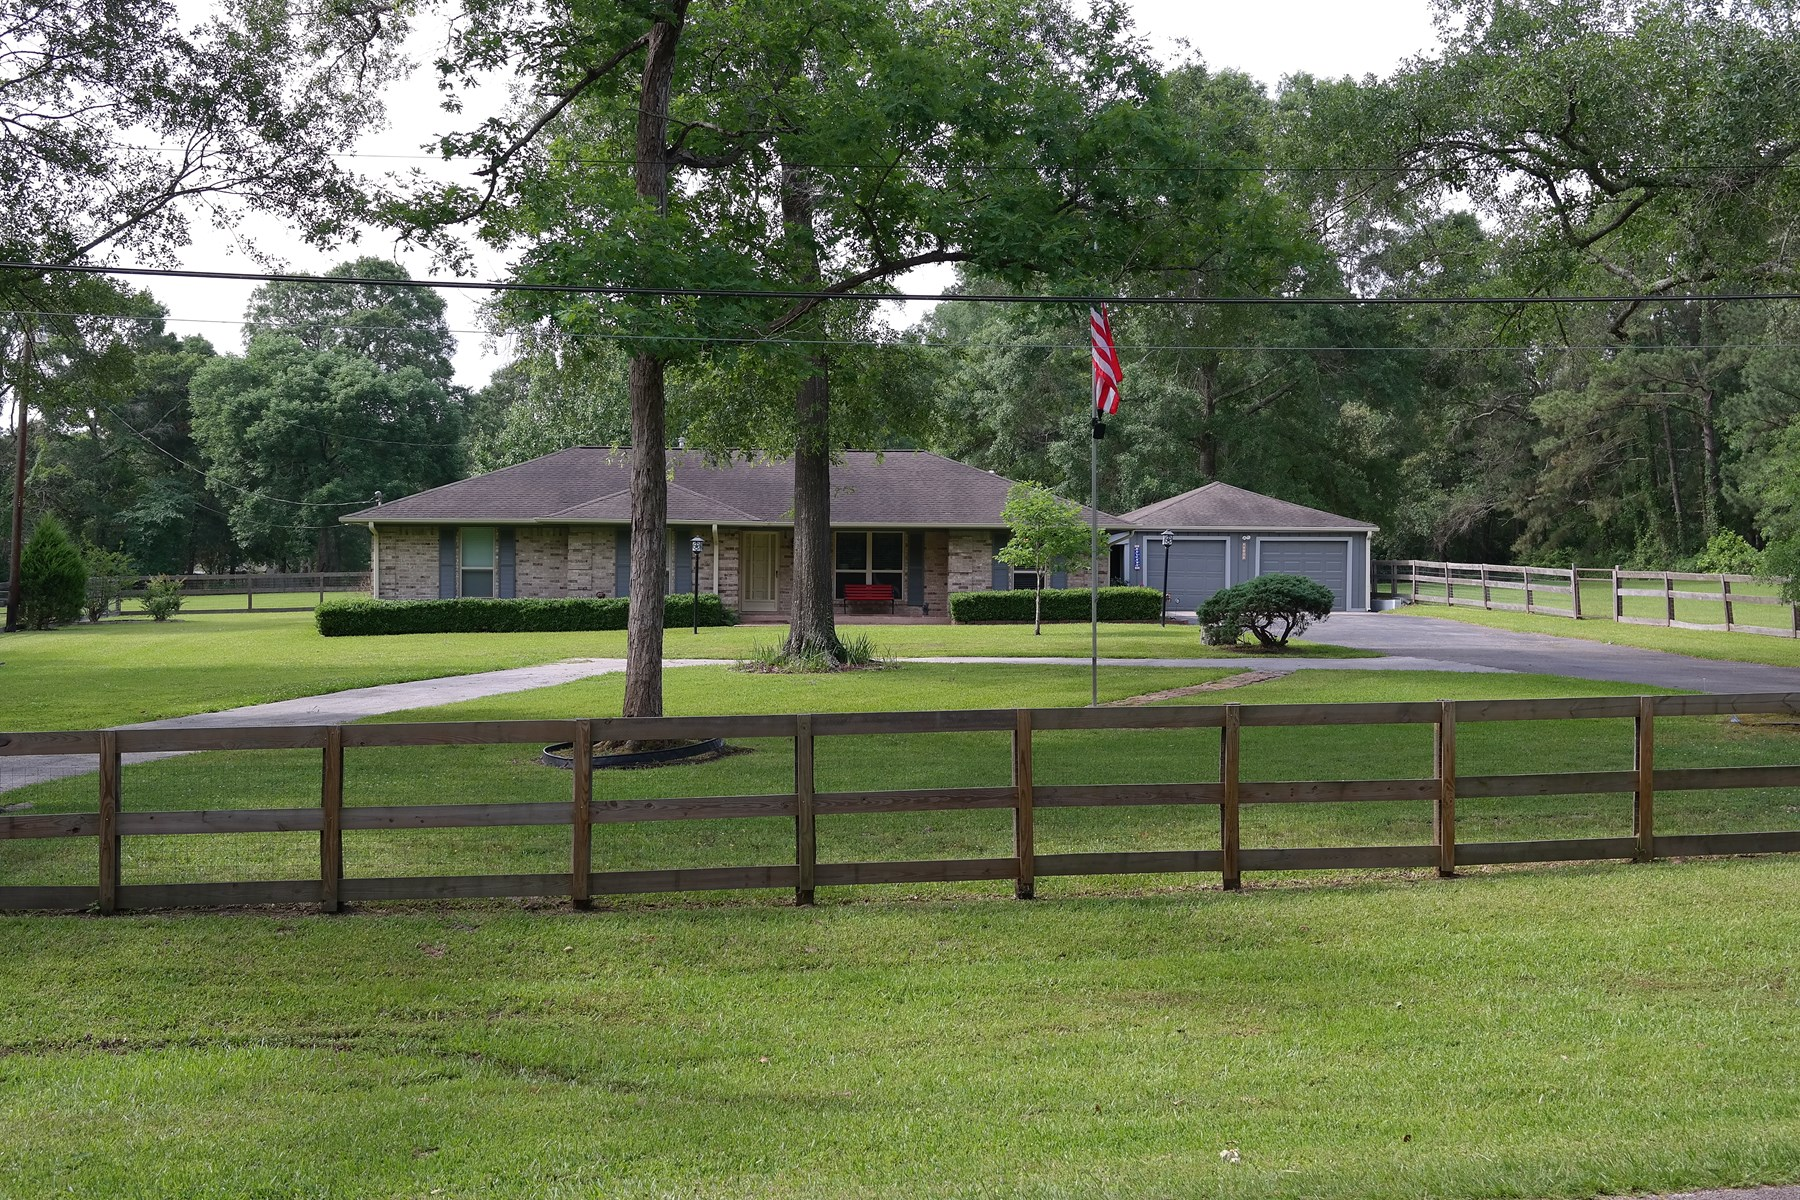 Horse Property for Sale in Montgomery County Texas